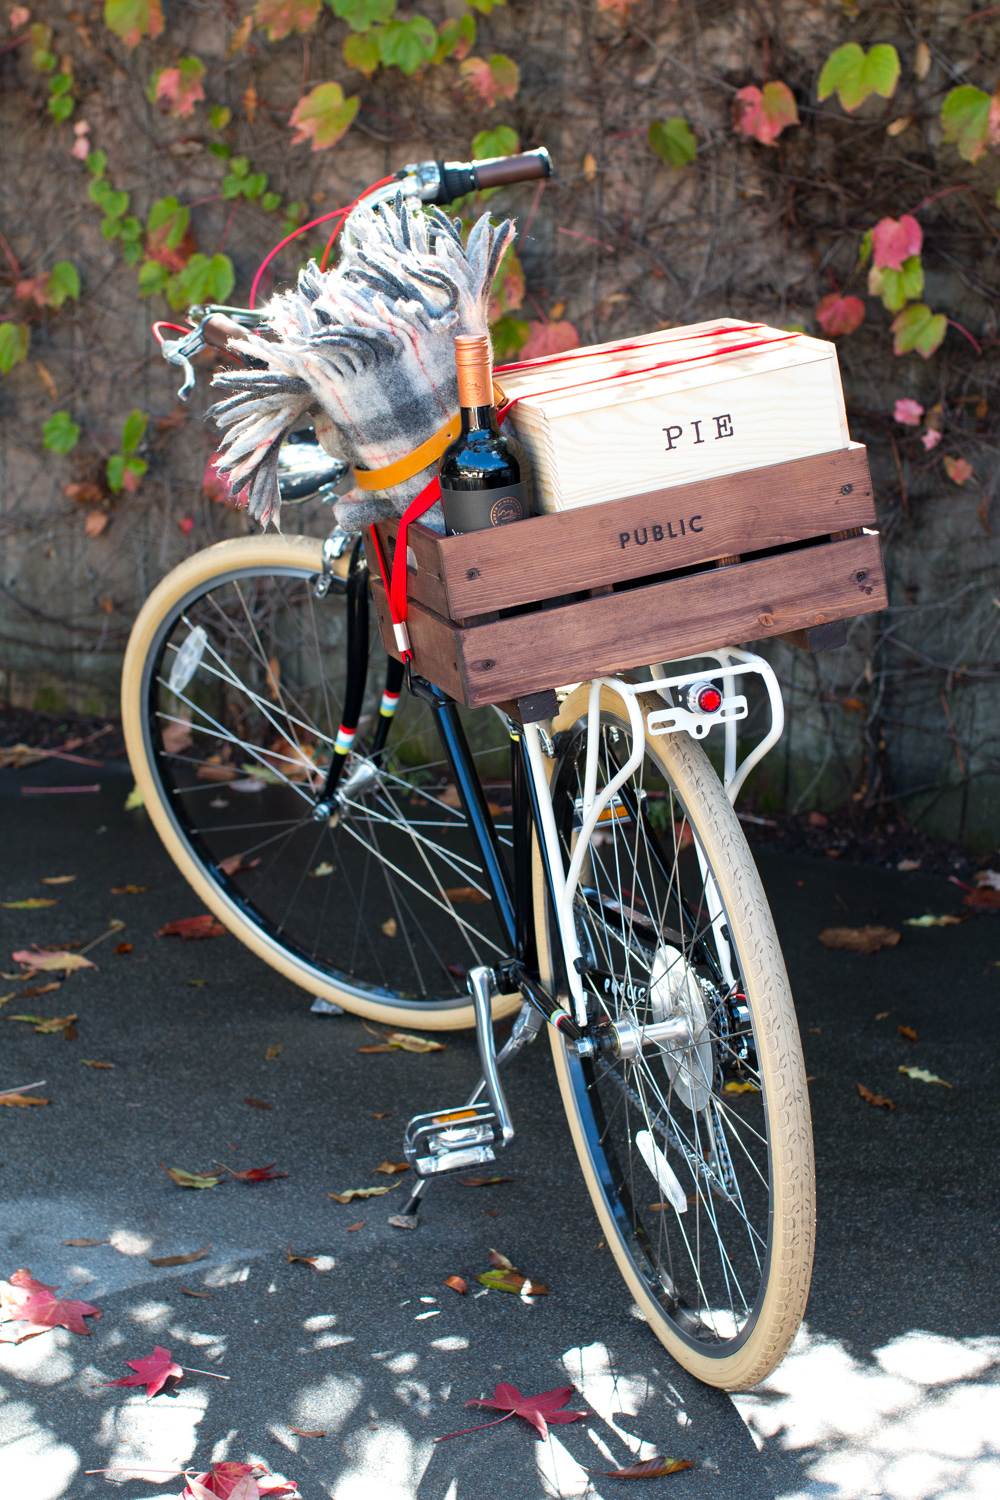 PUBLIC M7 Bike and Maple Glazed Apple Cinnamon Pop Tarts by Baking The Goods